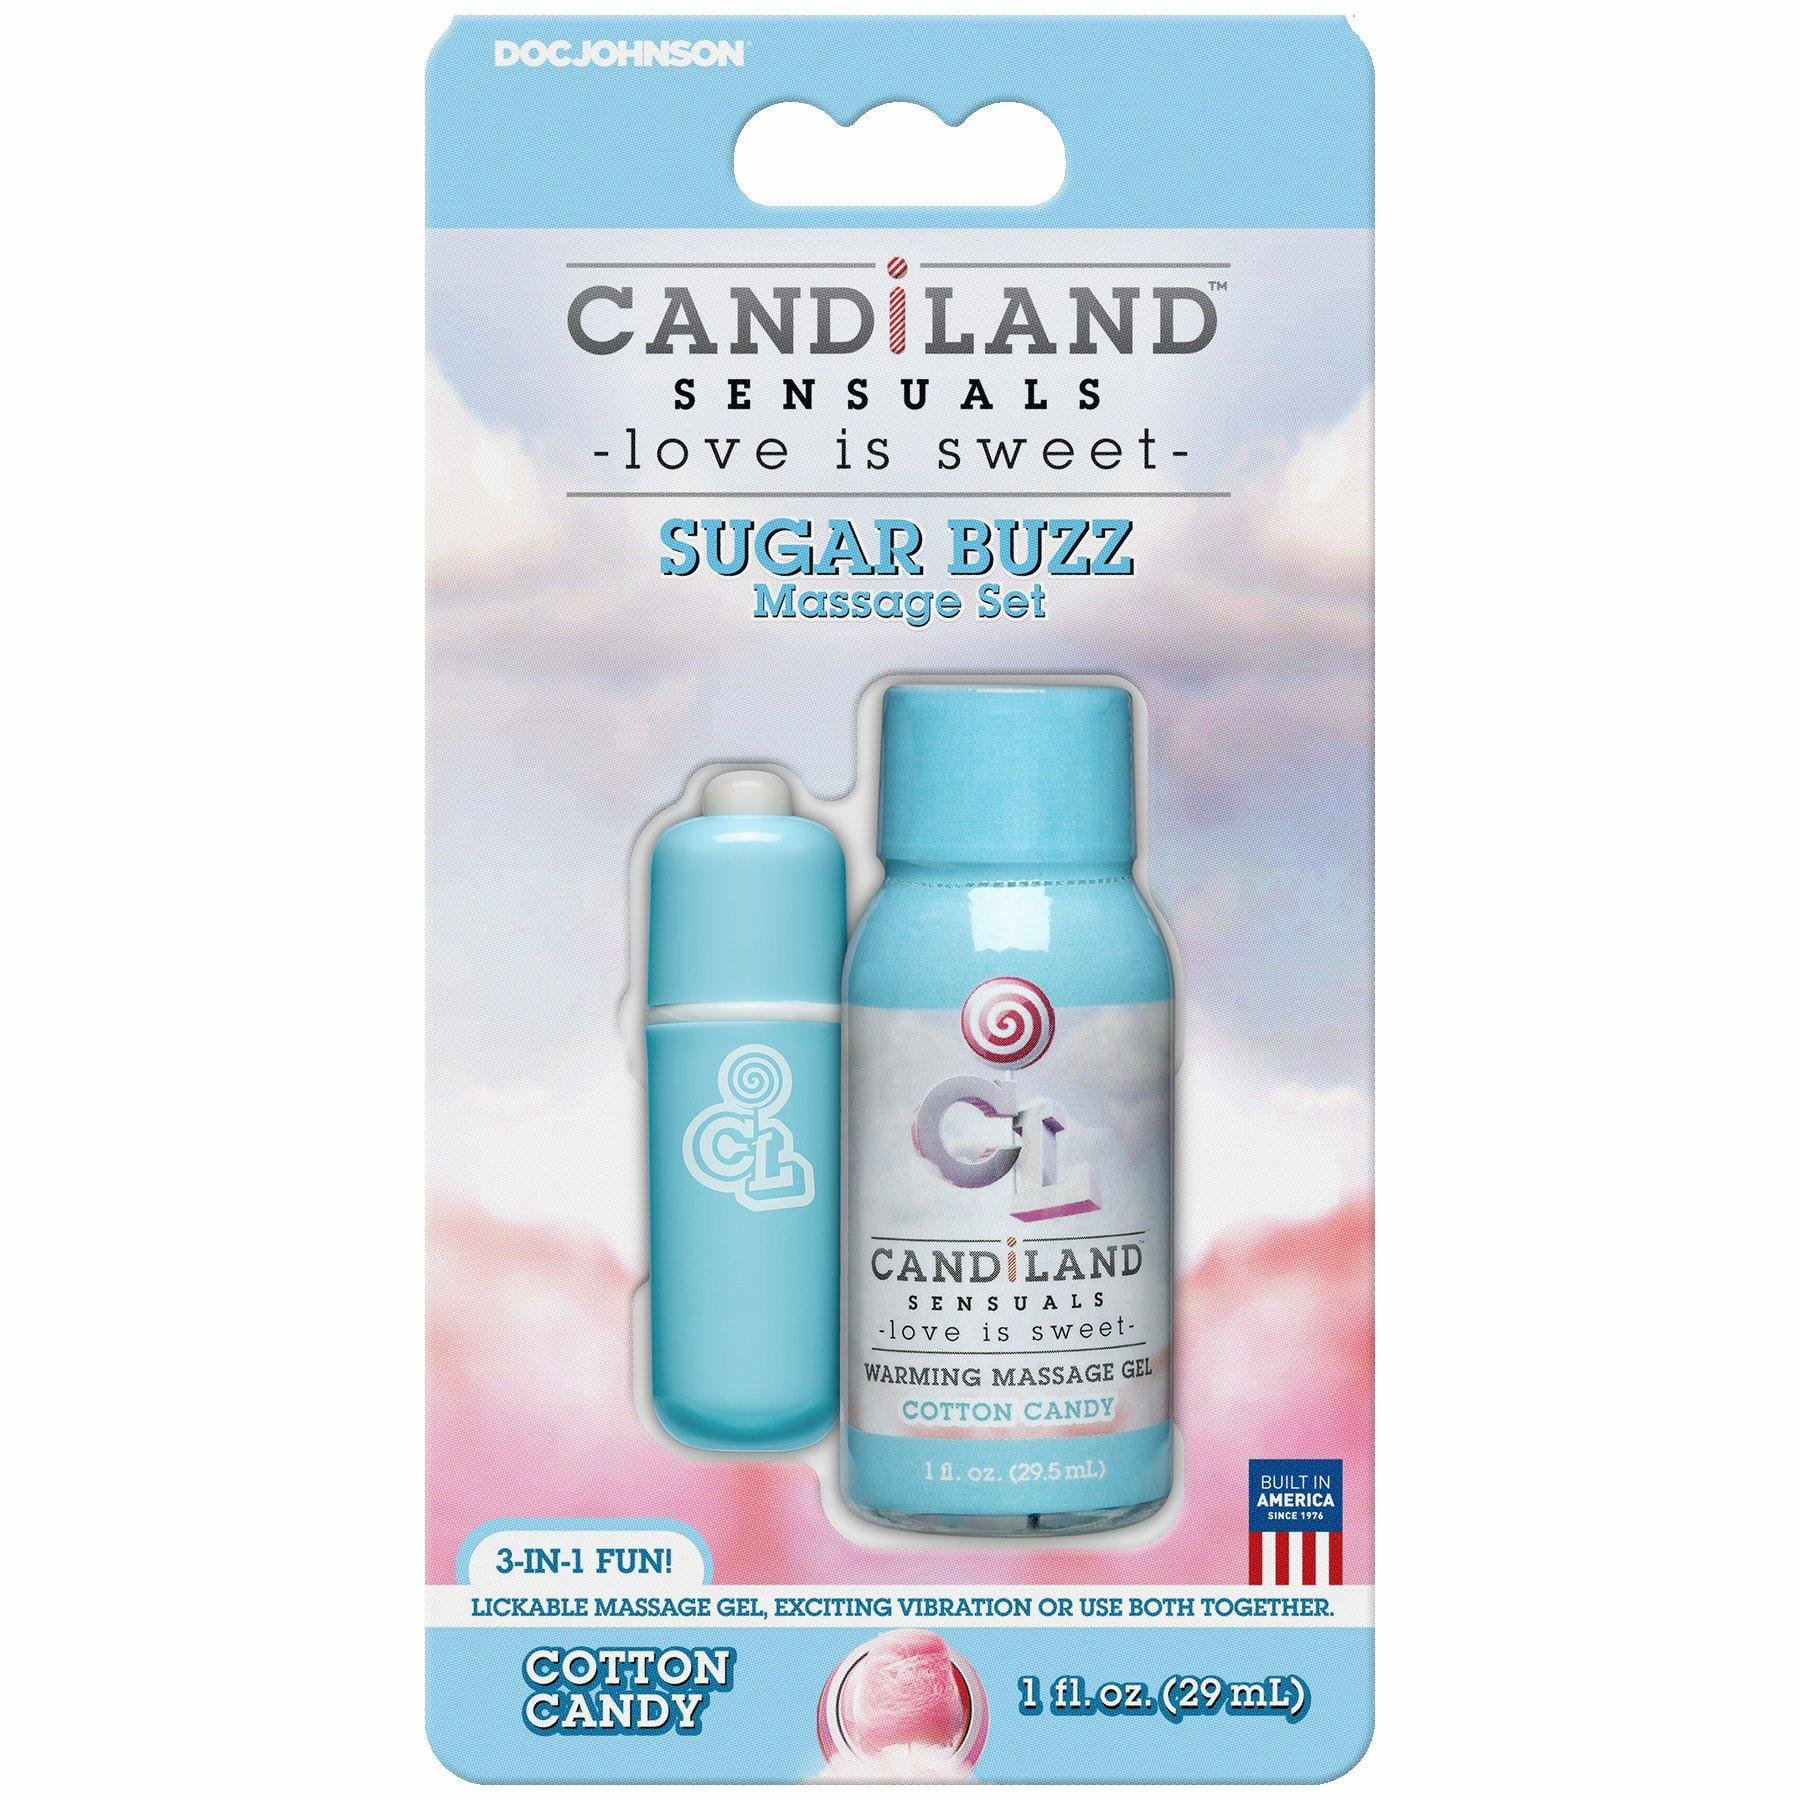 Doc Johnson Candiland Sensuals Sugar Buzz Massage Set, Cotton Candy by Doc Johnson